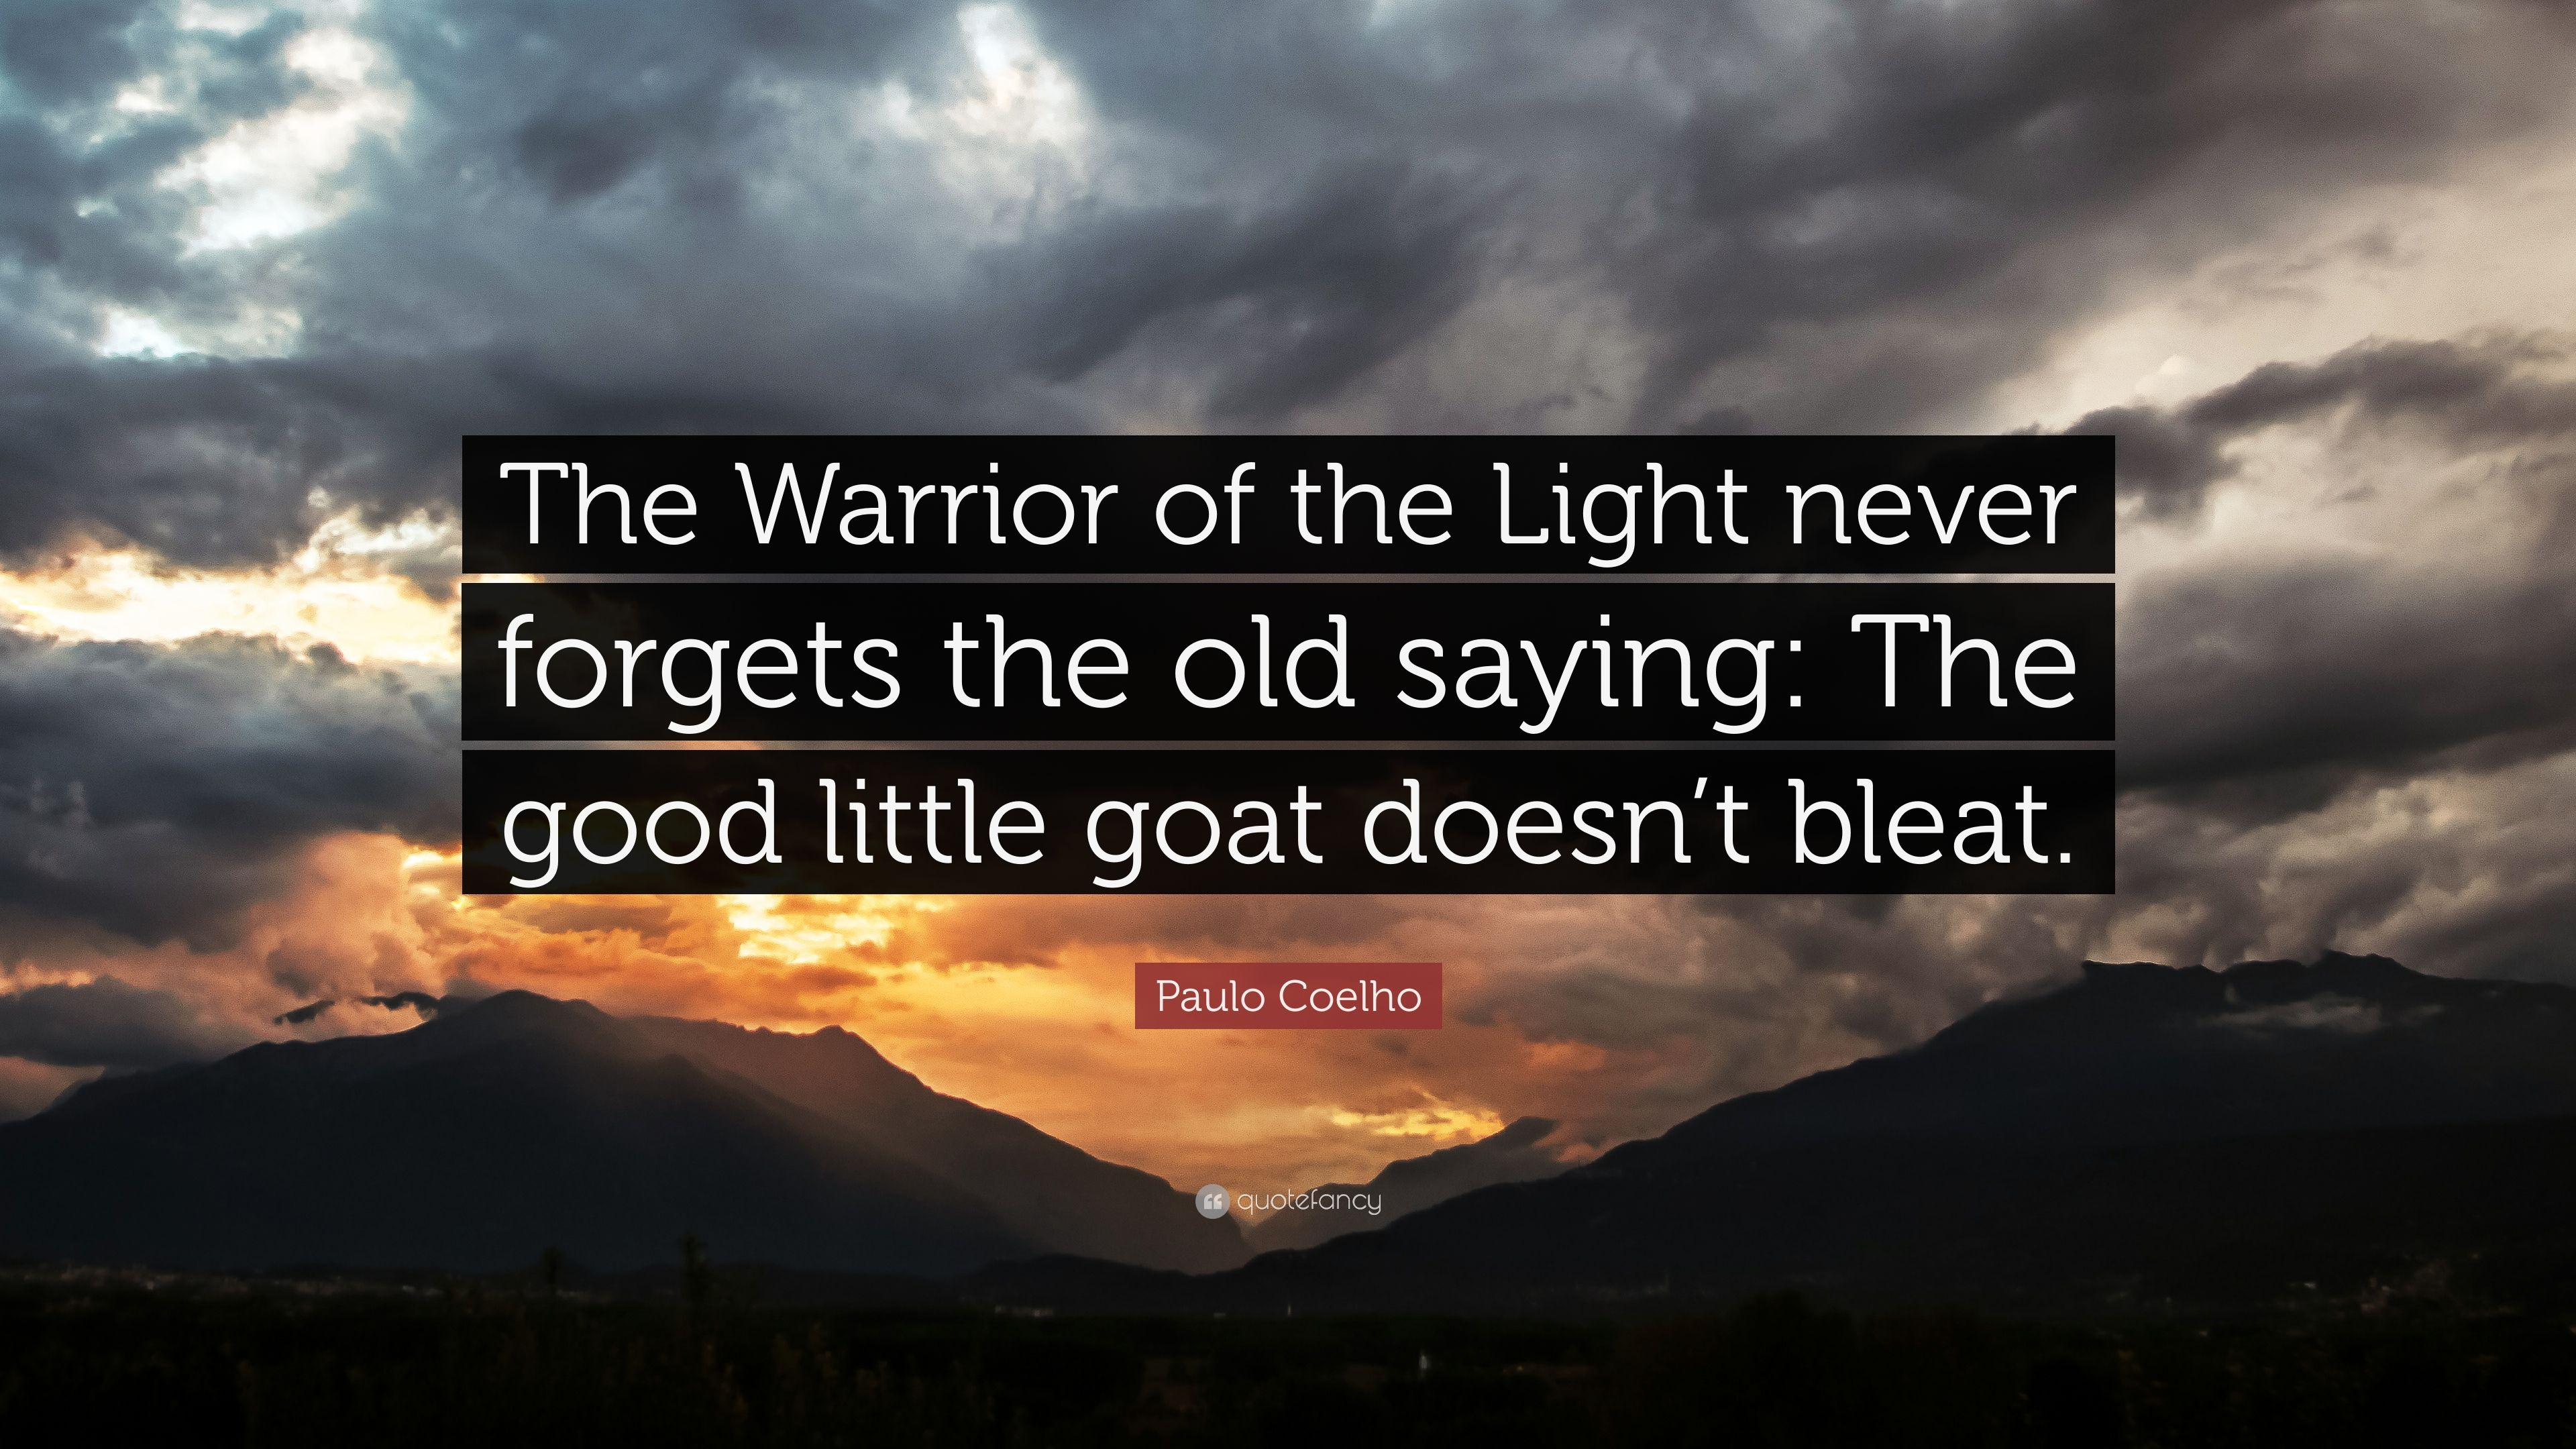 Paulo Coelho Quote: The Warrior of the Light never